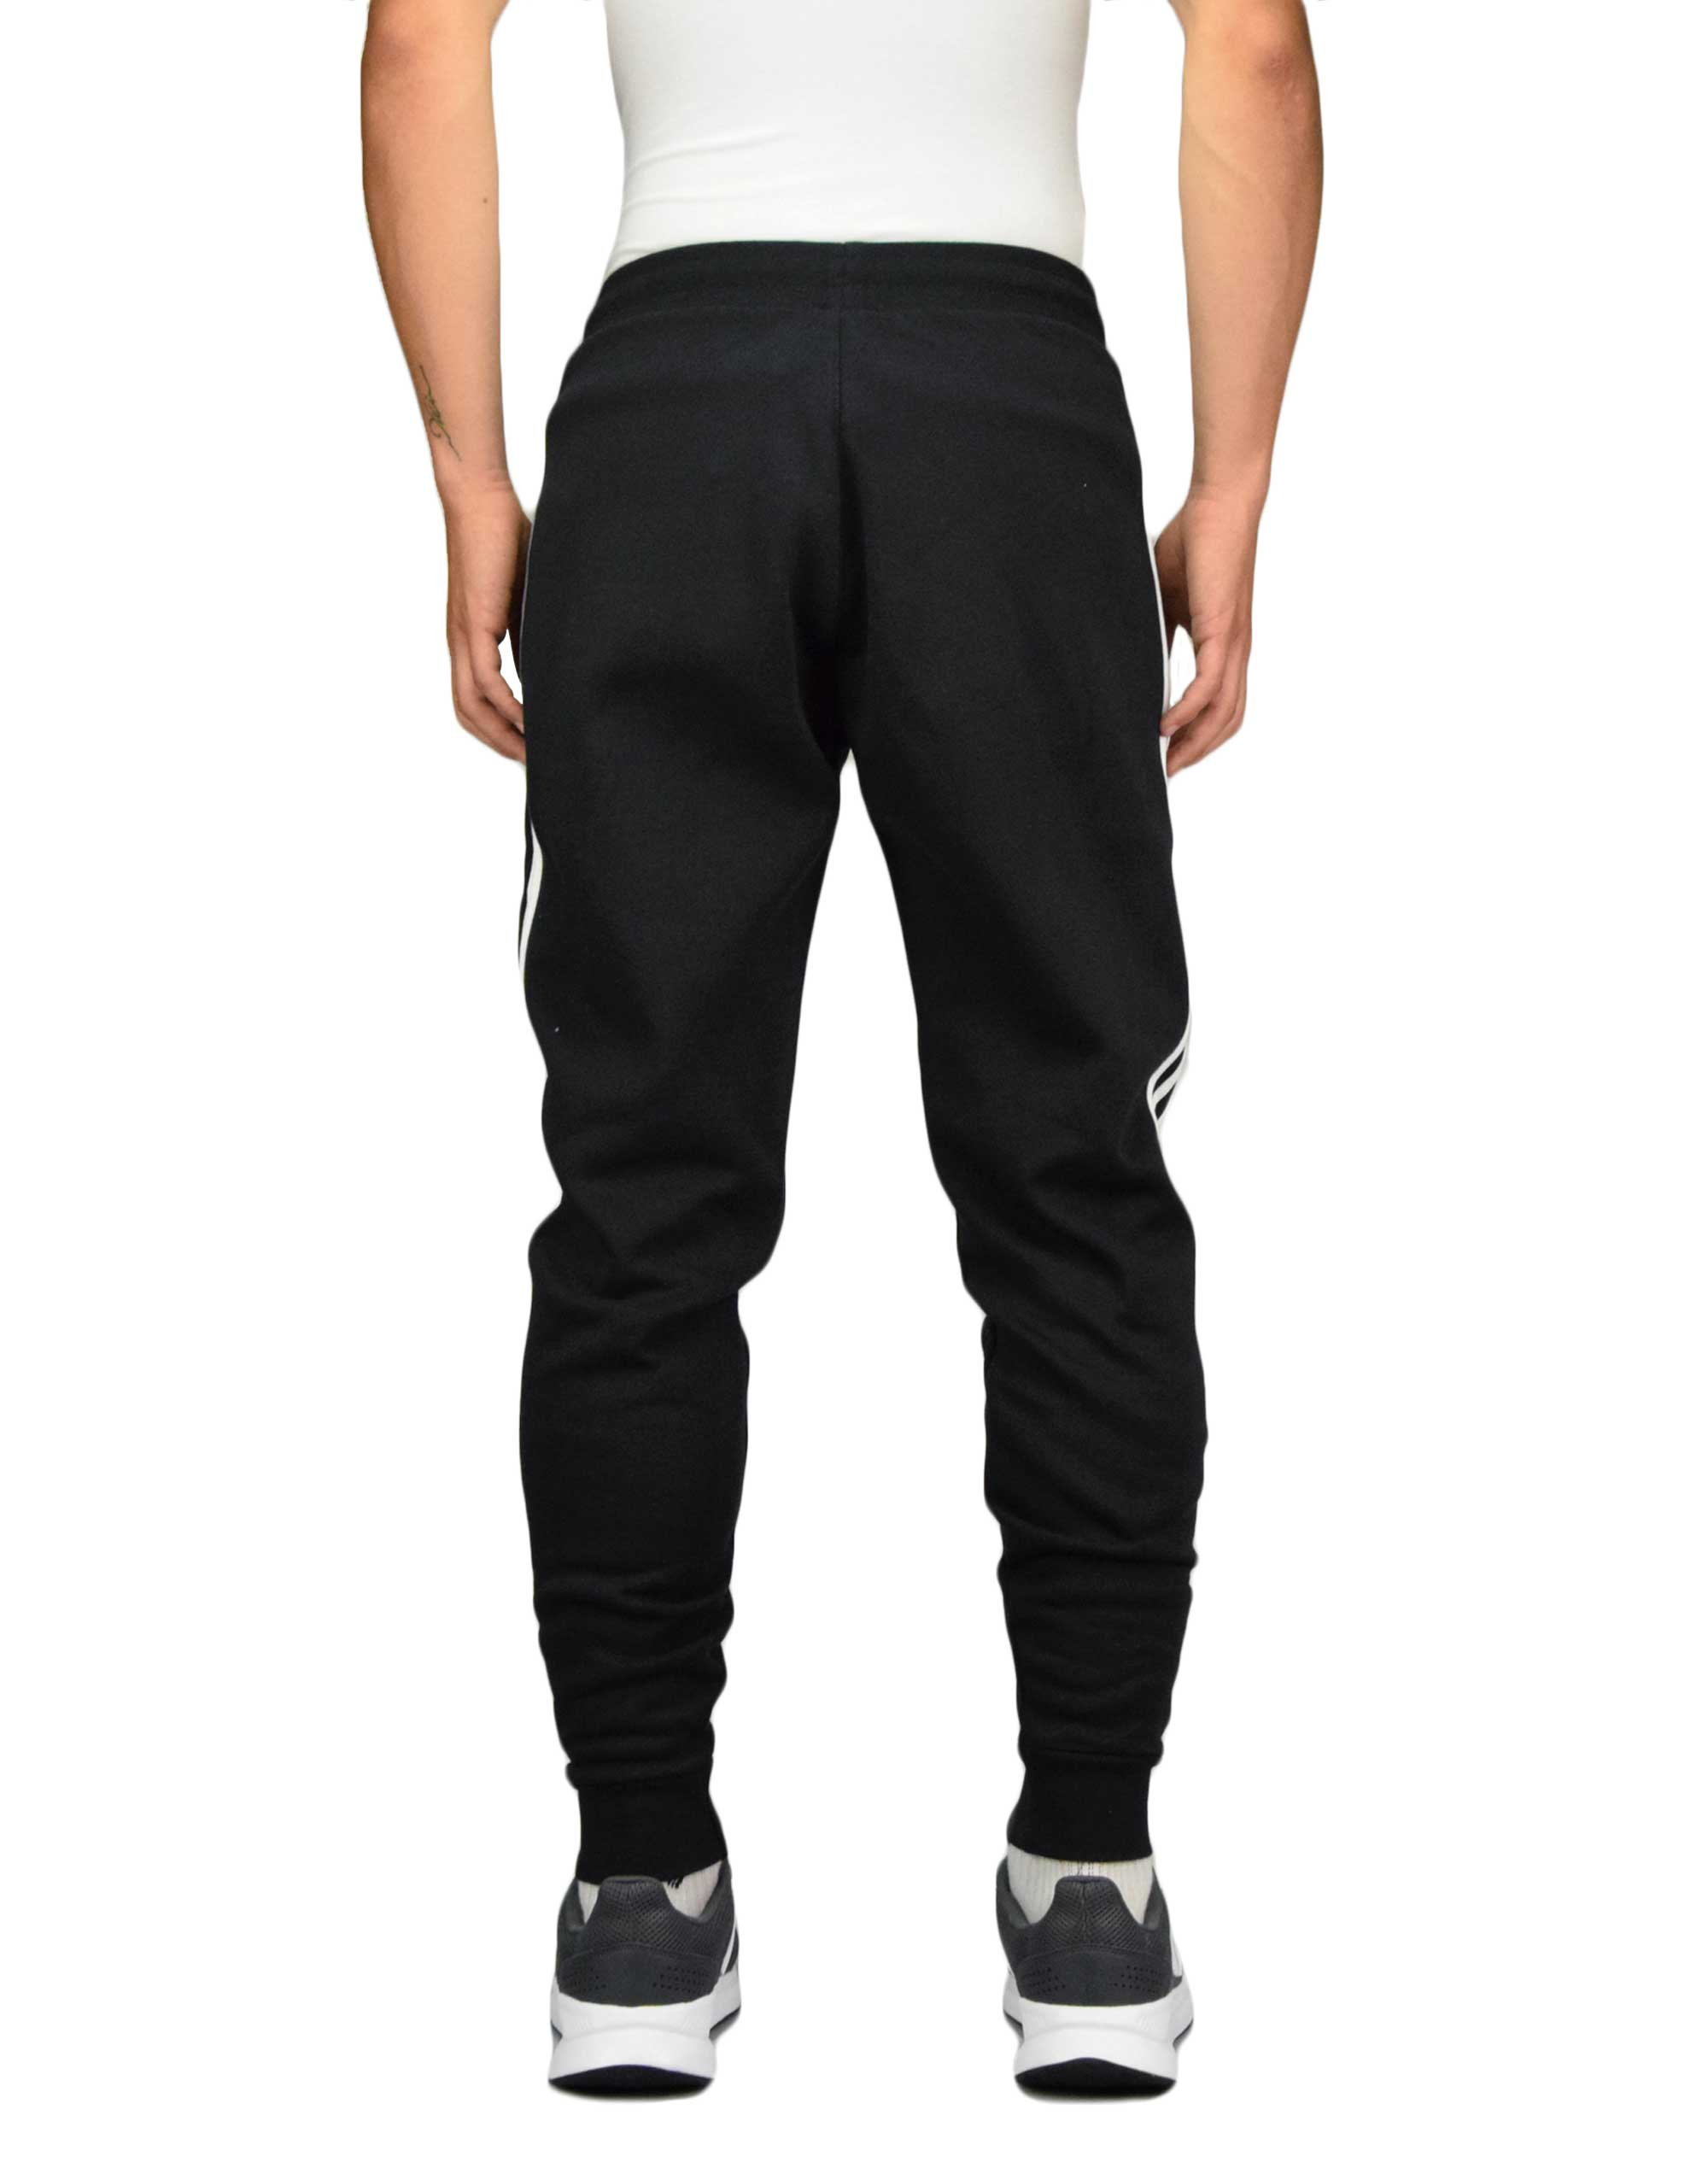 Adidas 3-Stripes Pant (DV1549) Black